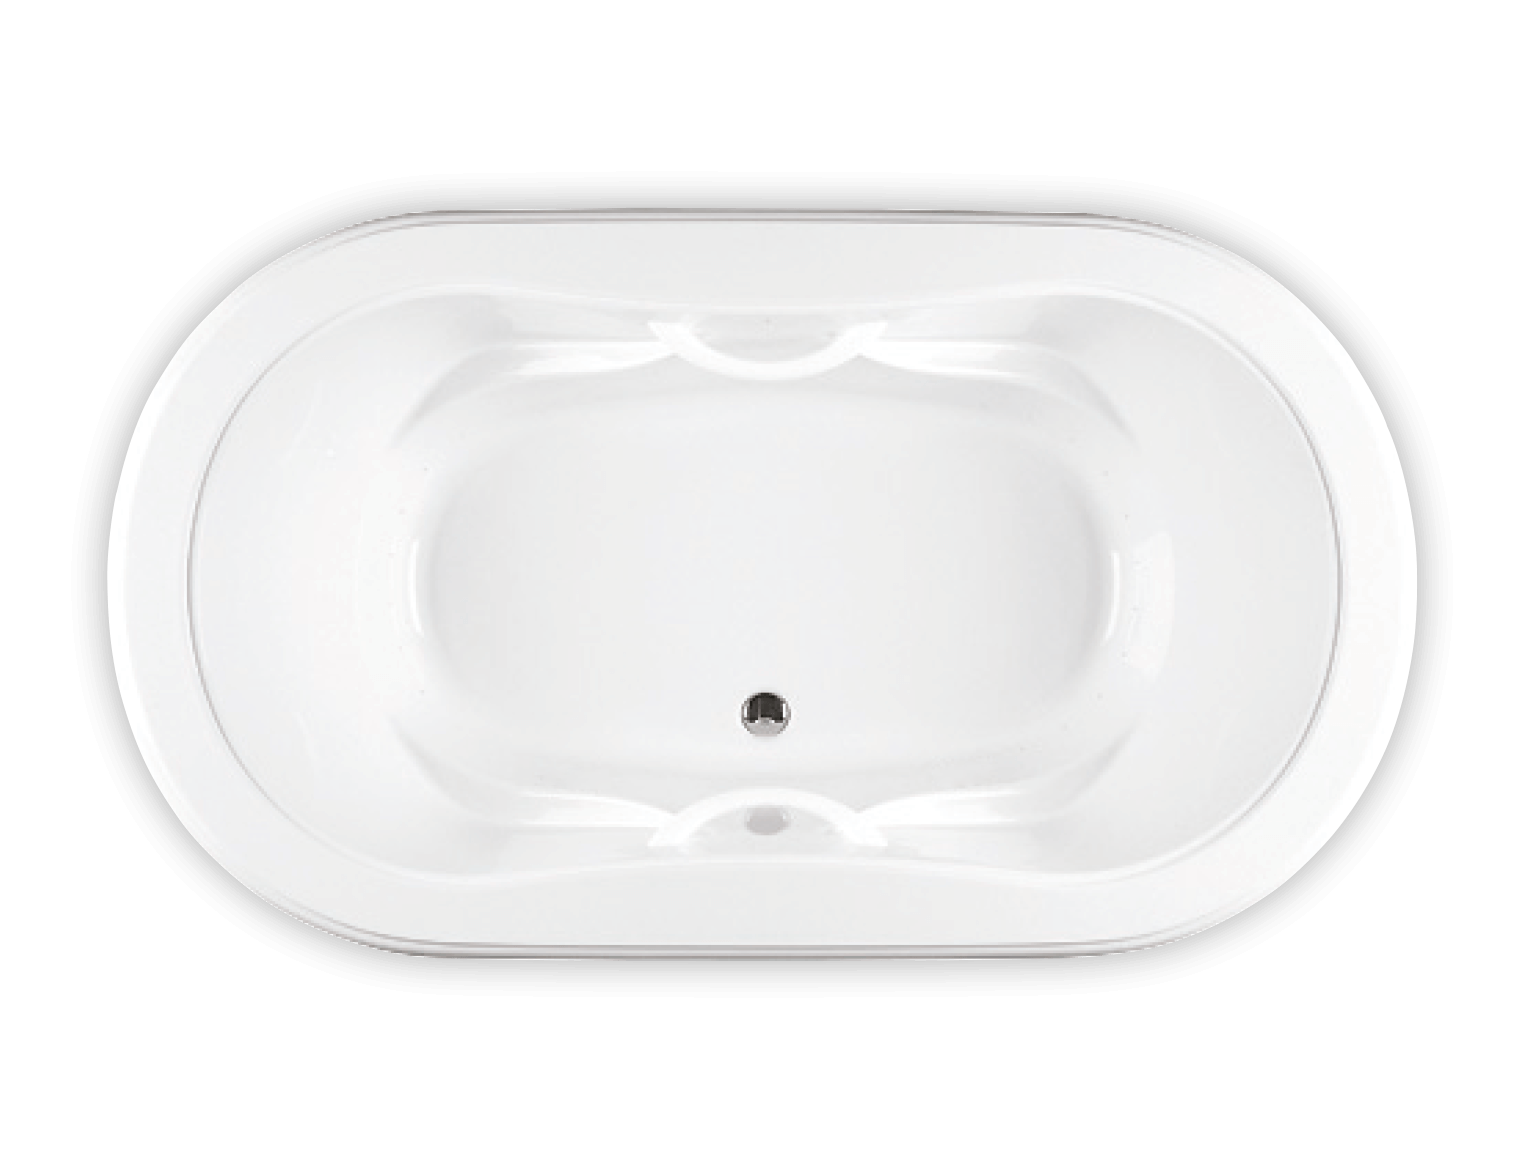 Bainultra Elegancia 7236 two person large air jet bathtub for your master bathroom